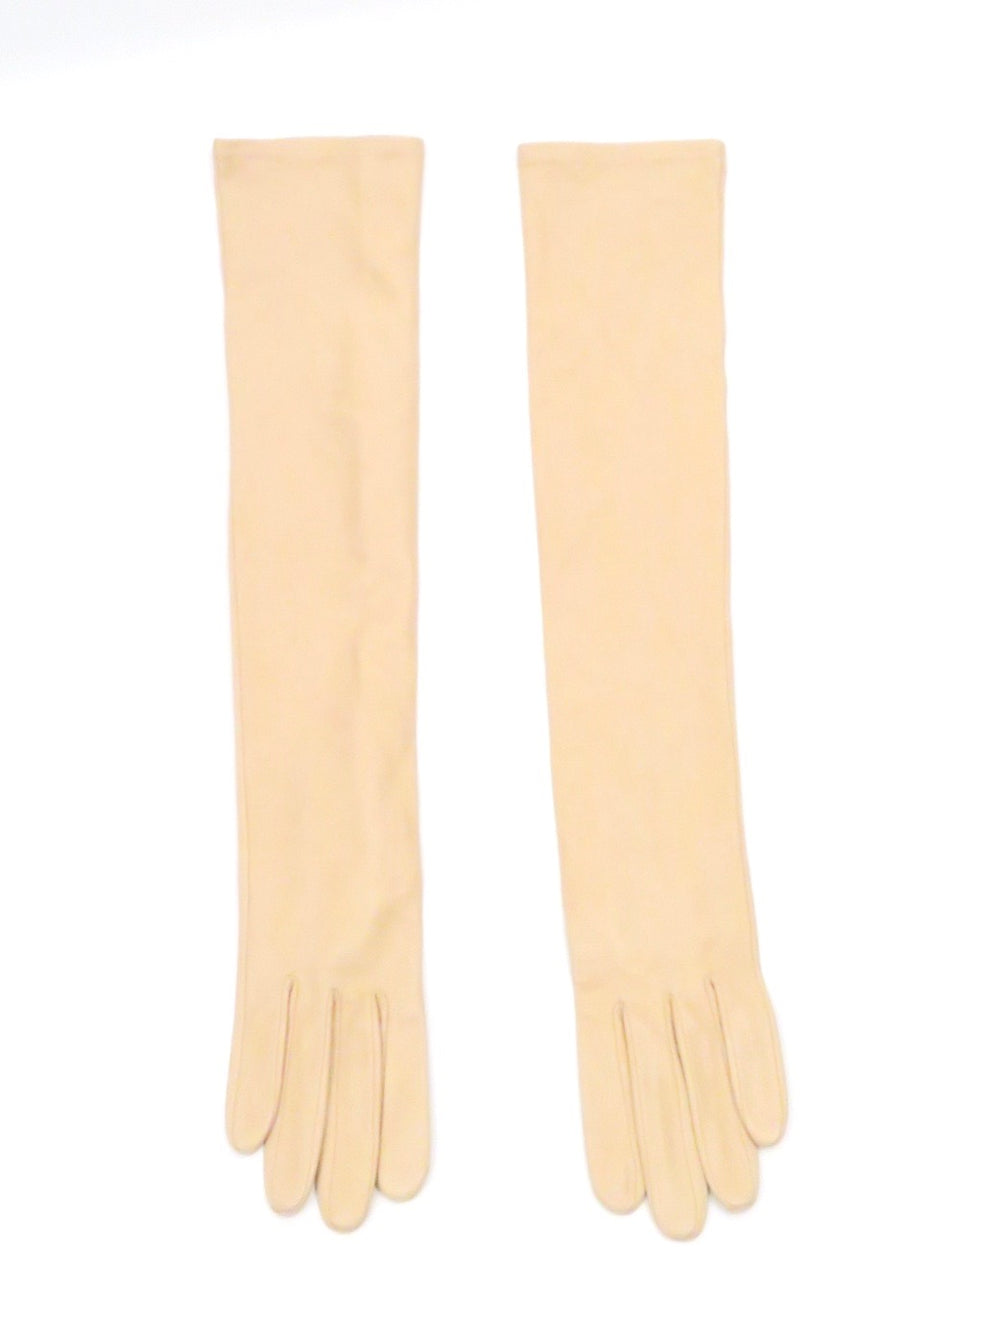 unlabeled beige long leather women's gloves. above elbow length suede lining.